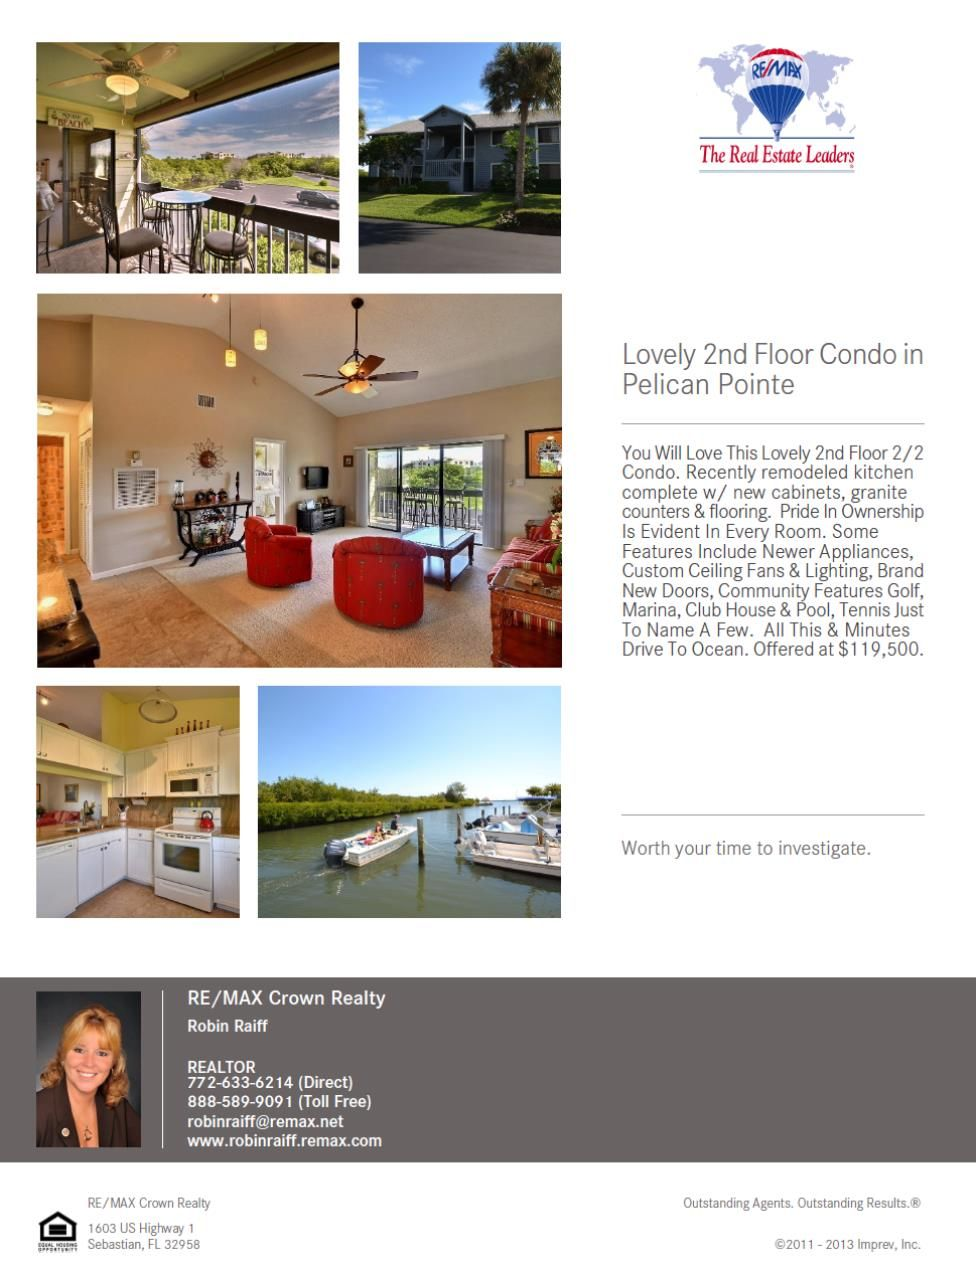 Beautiful Condo In Pelican Pointe Call Robin Today To See 772